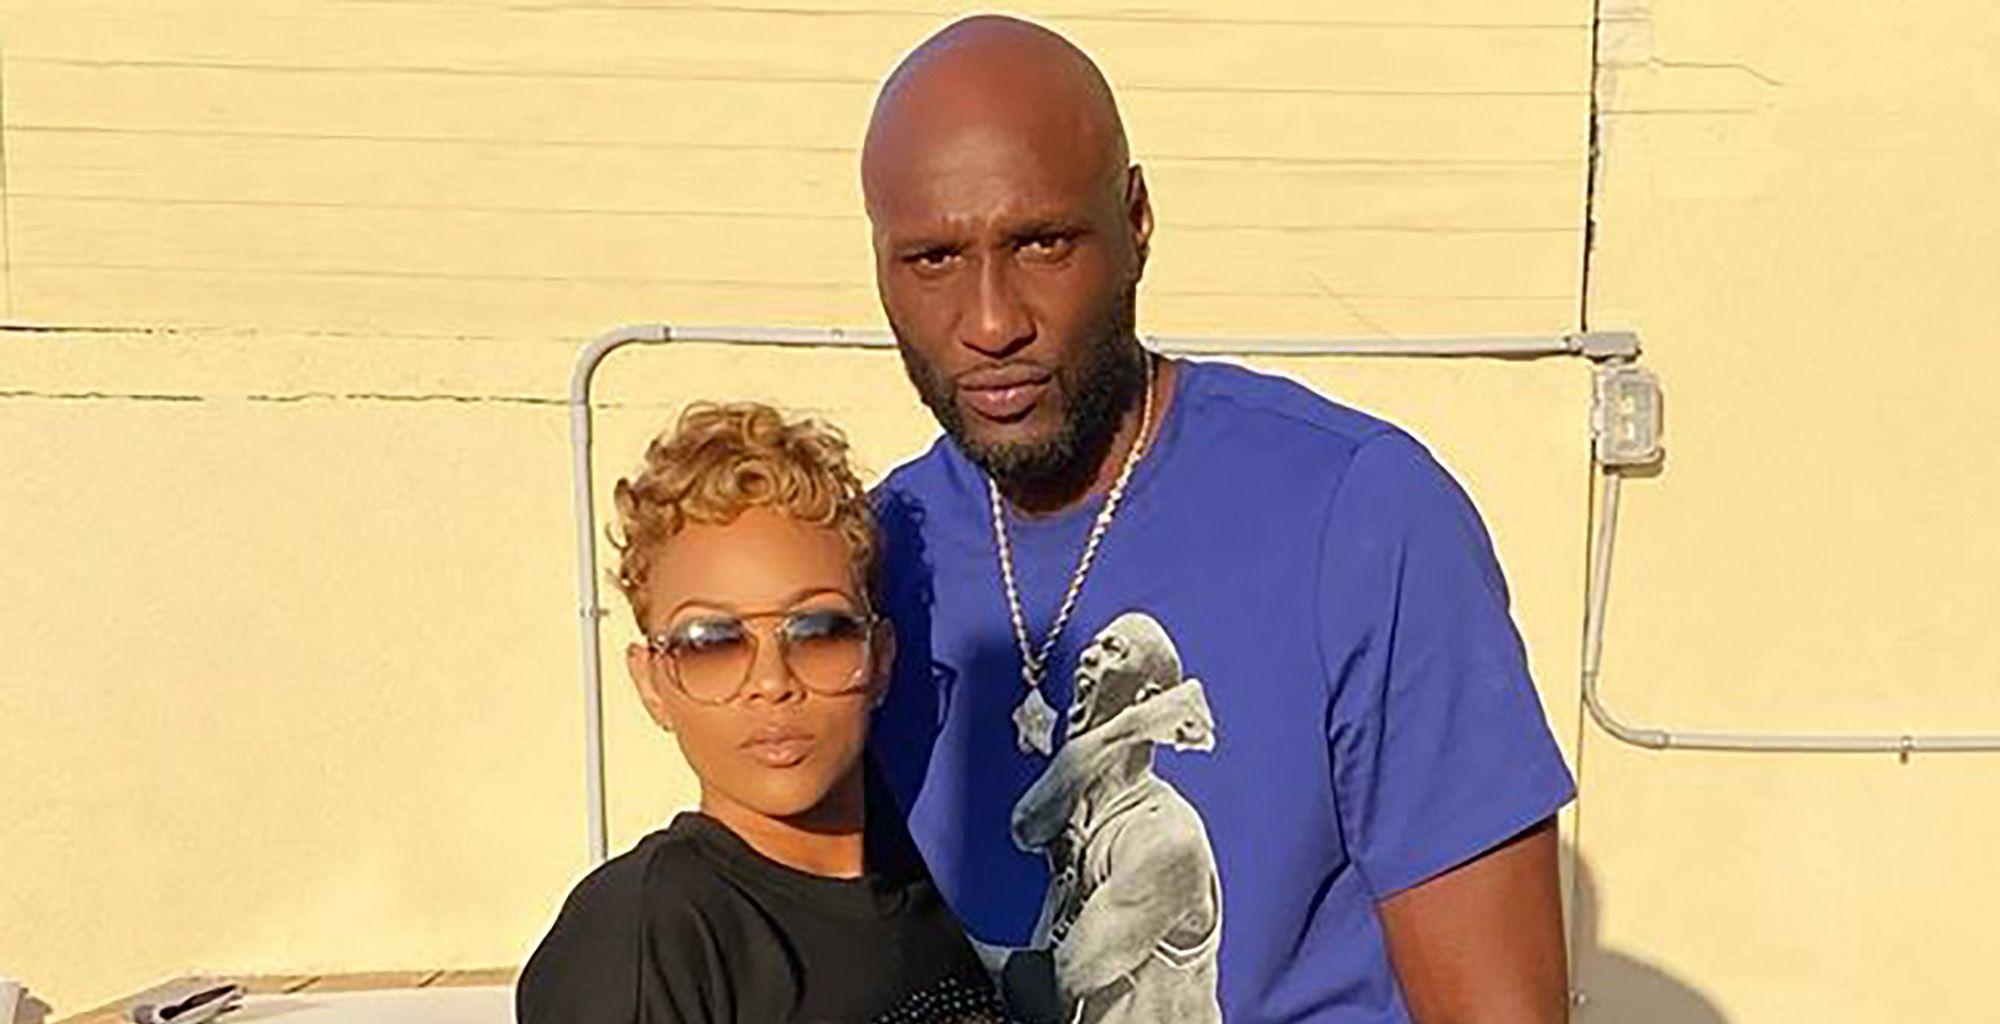 Lamar Odom And Sabrina Parr Are Over - She Confirms Split And Says He Needs Help!